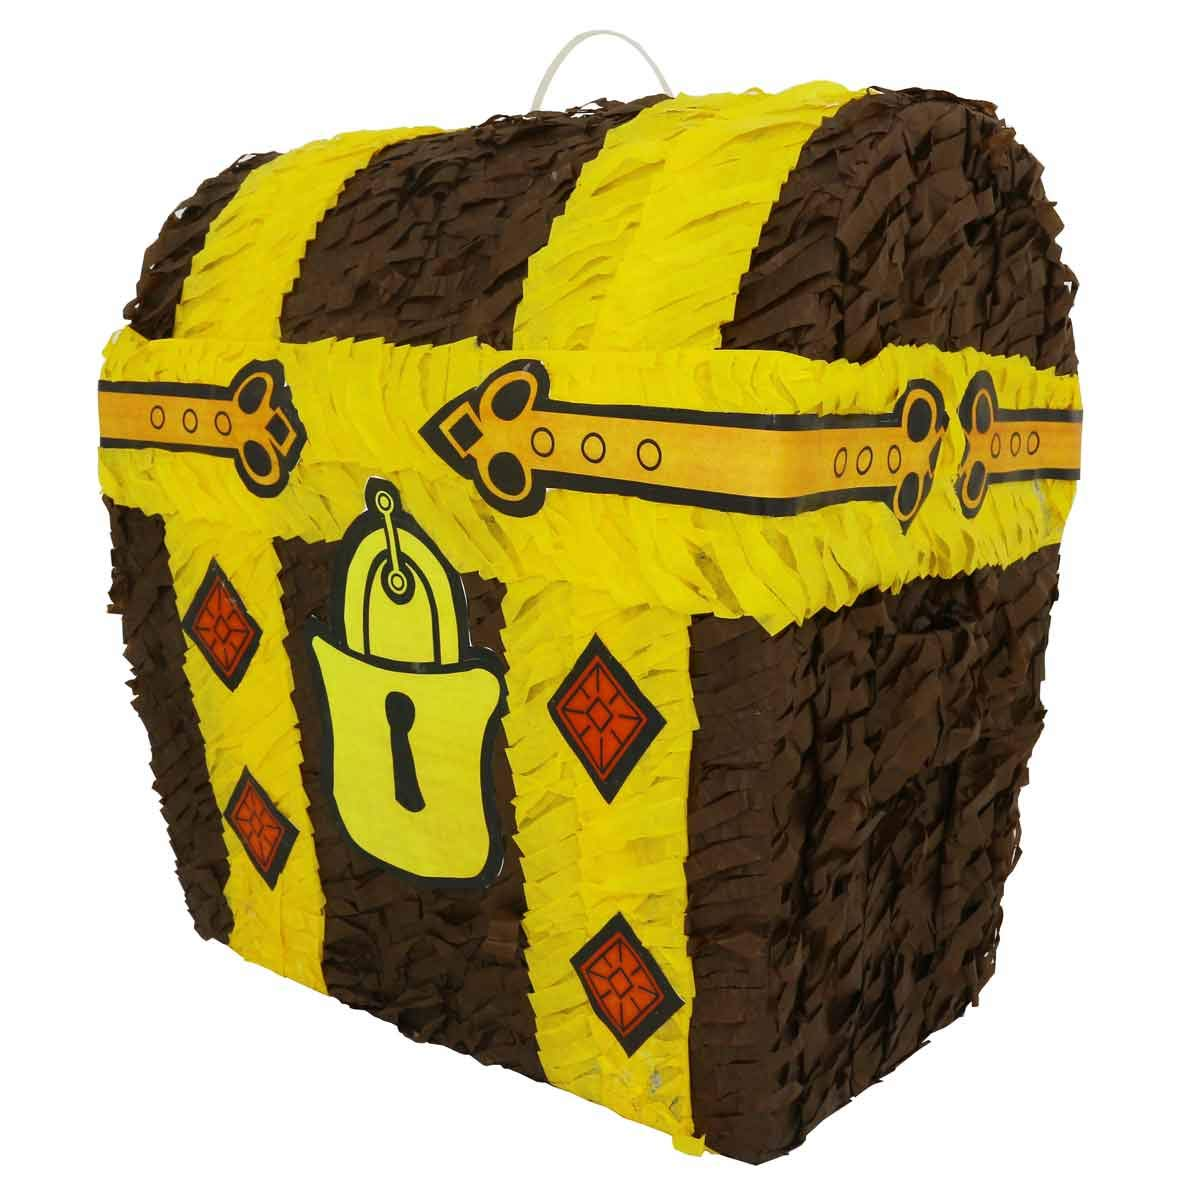 Lytio Treasure Chest Pinata (Battle Royale) Pirate Themed Piñata Ideal for Gaming, Kids Birthday Parties, Center Piece or Photo Prop